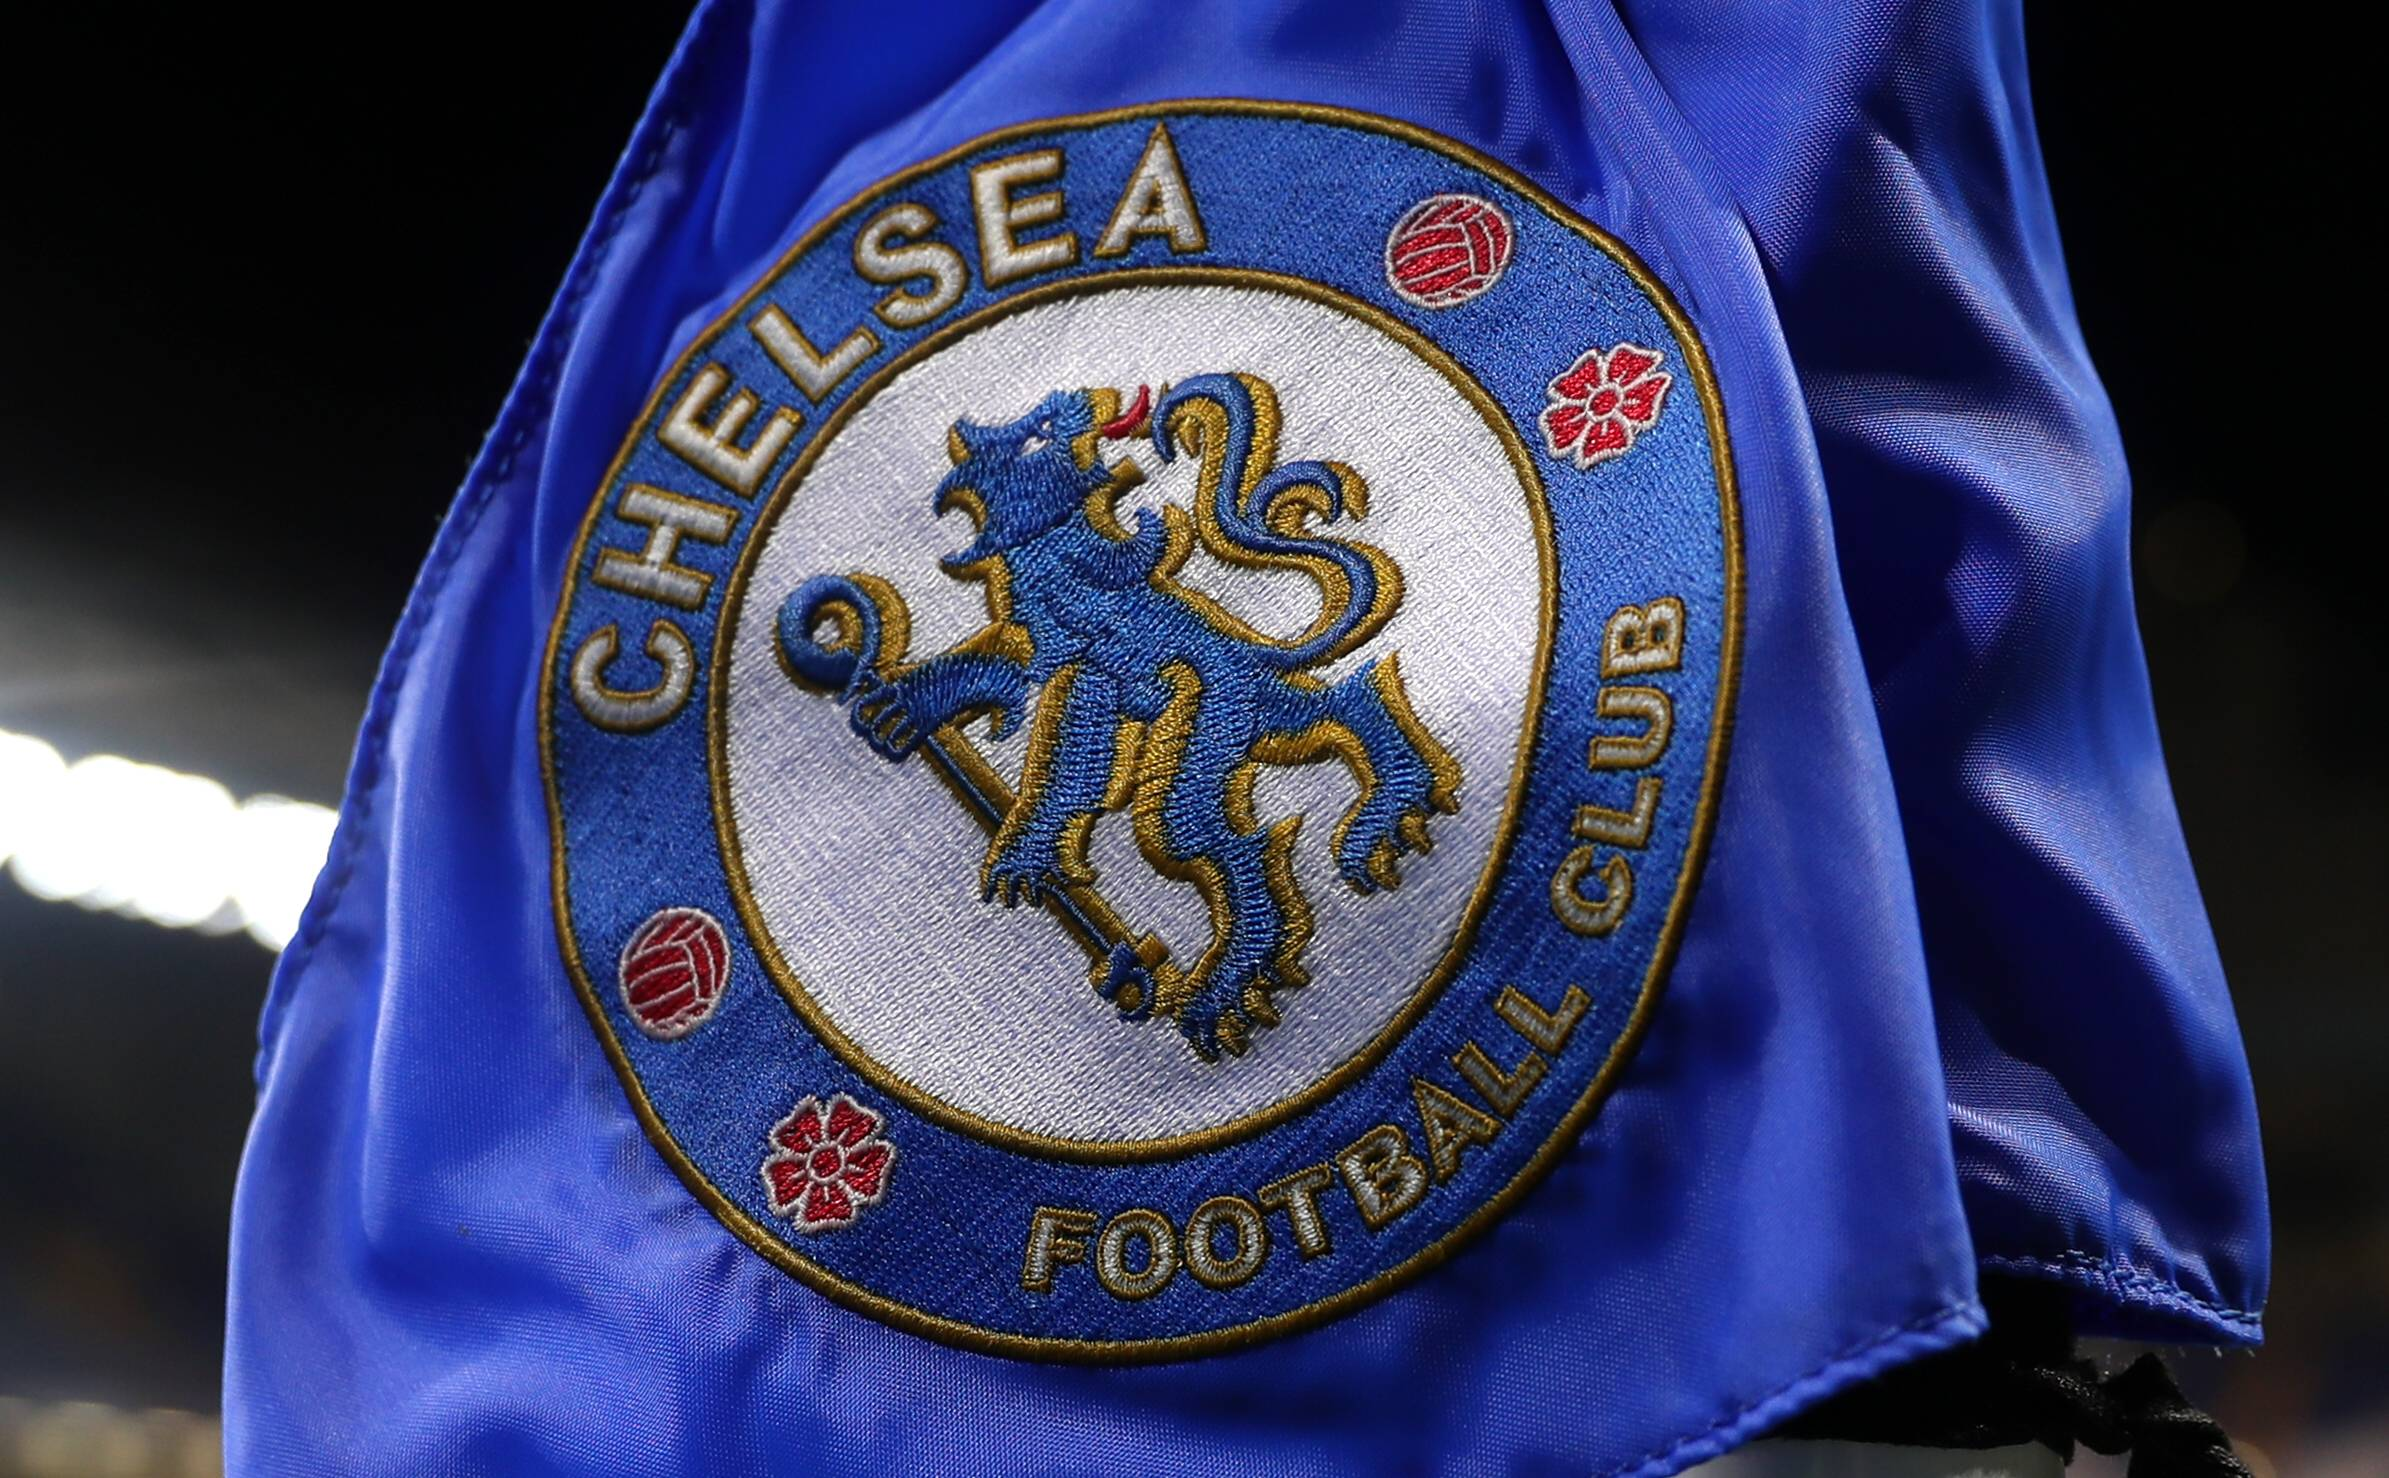 Chelsea logo as seen on a corner flag in a game against Swansea City.